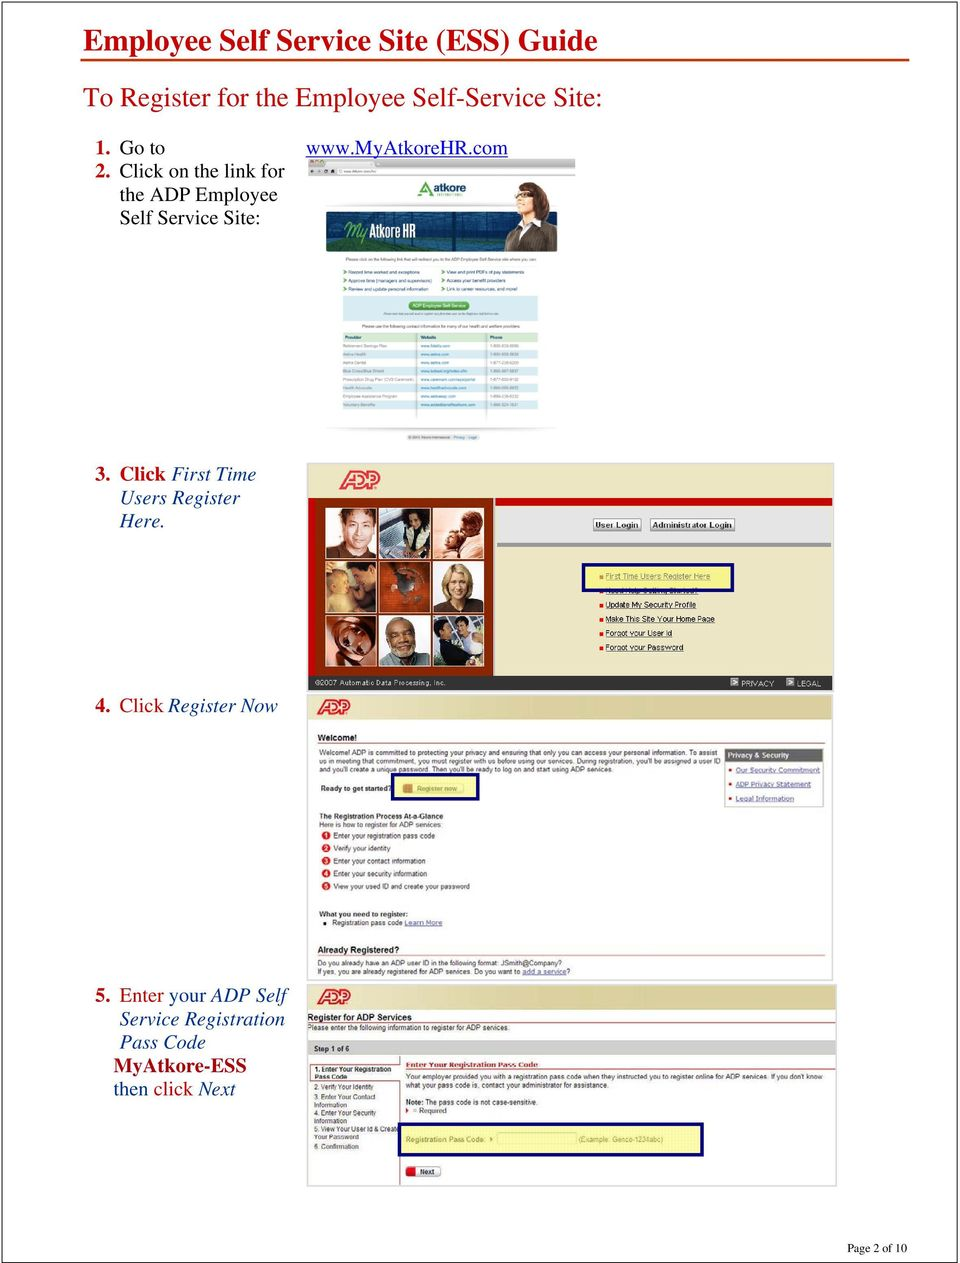 com 3 click first time users register here 4 click register now 5